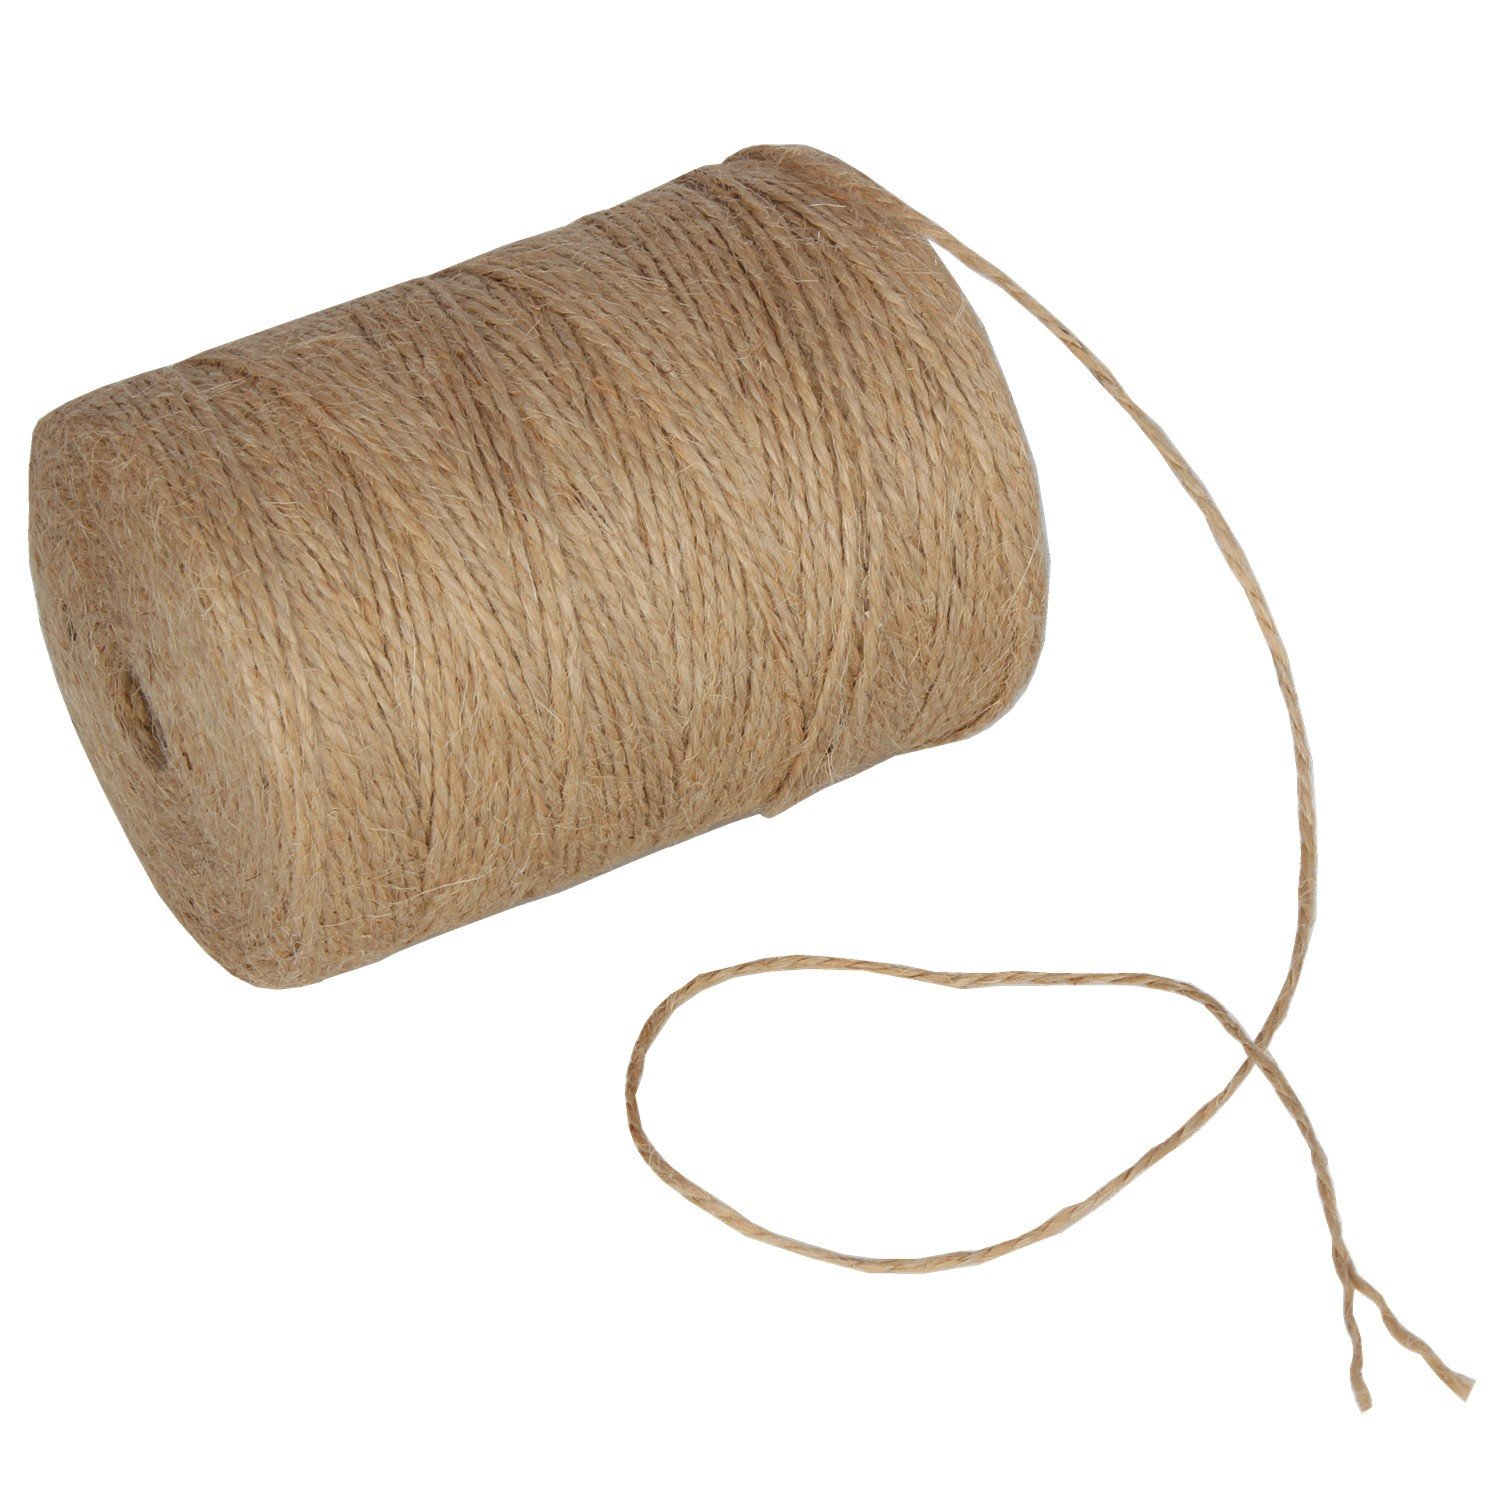 984 Feet Natural Jute Twine Hemp String Christmas Twine String Packing Materials Durable Twine for Gardening